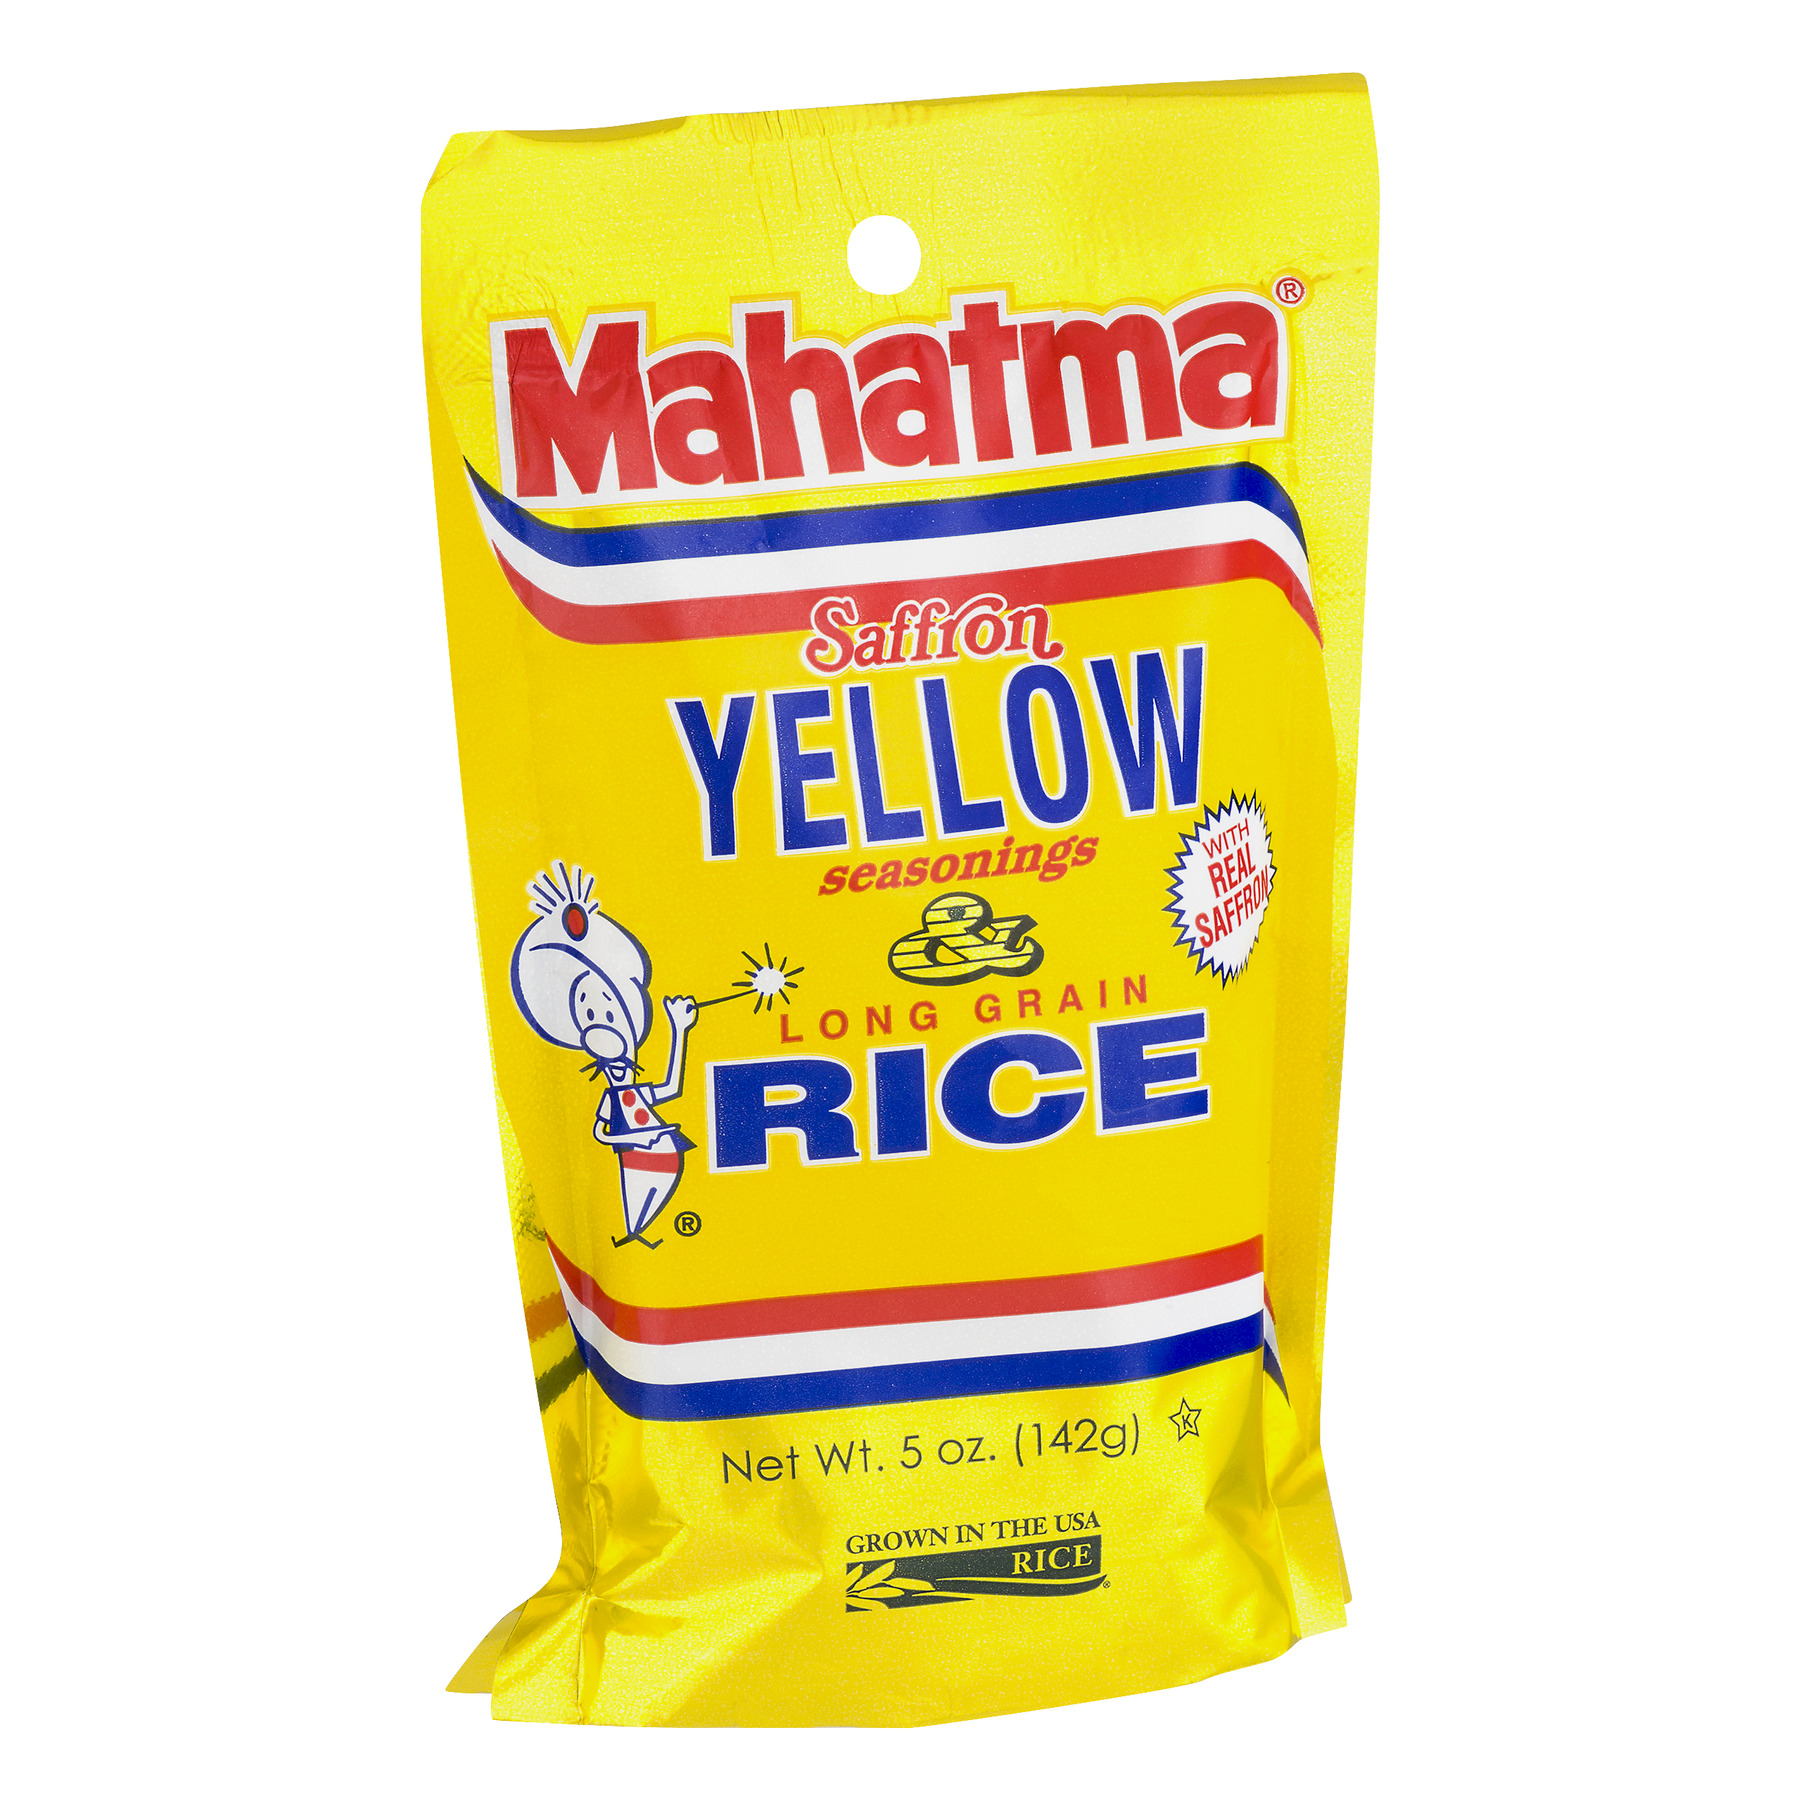 Mahatma Authentic Safron Yellow Seasoned Rice Mix 5 Oz Bag Walmart Com Walmart Com